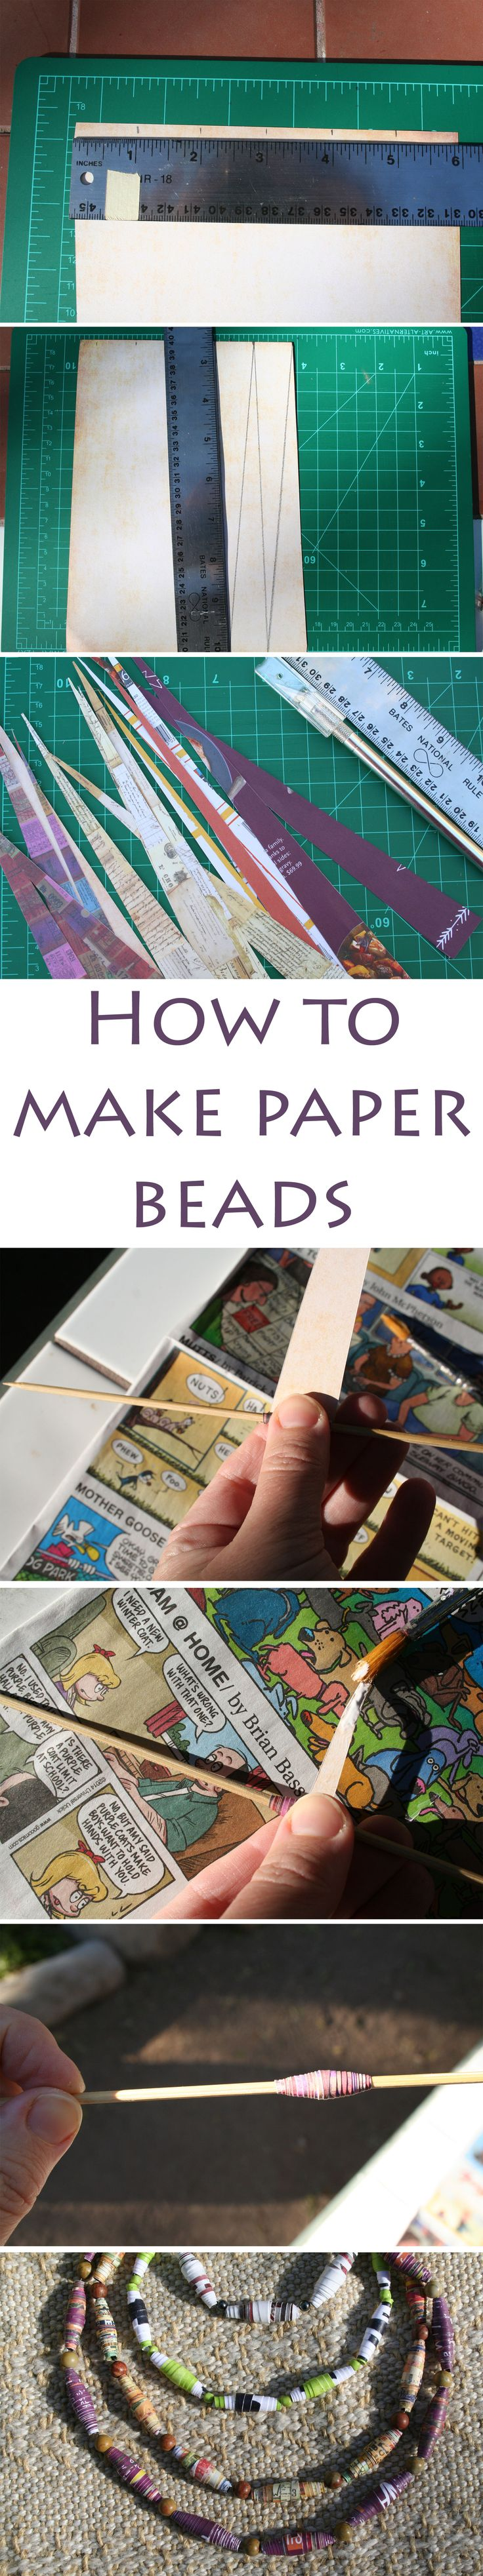 How to make paper beads - Here is a step by step tutorial on making your own paper beads. Make them into a necklace, bracelet, or earrings.